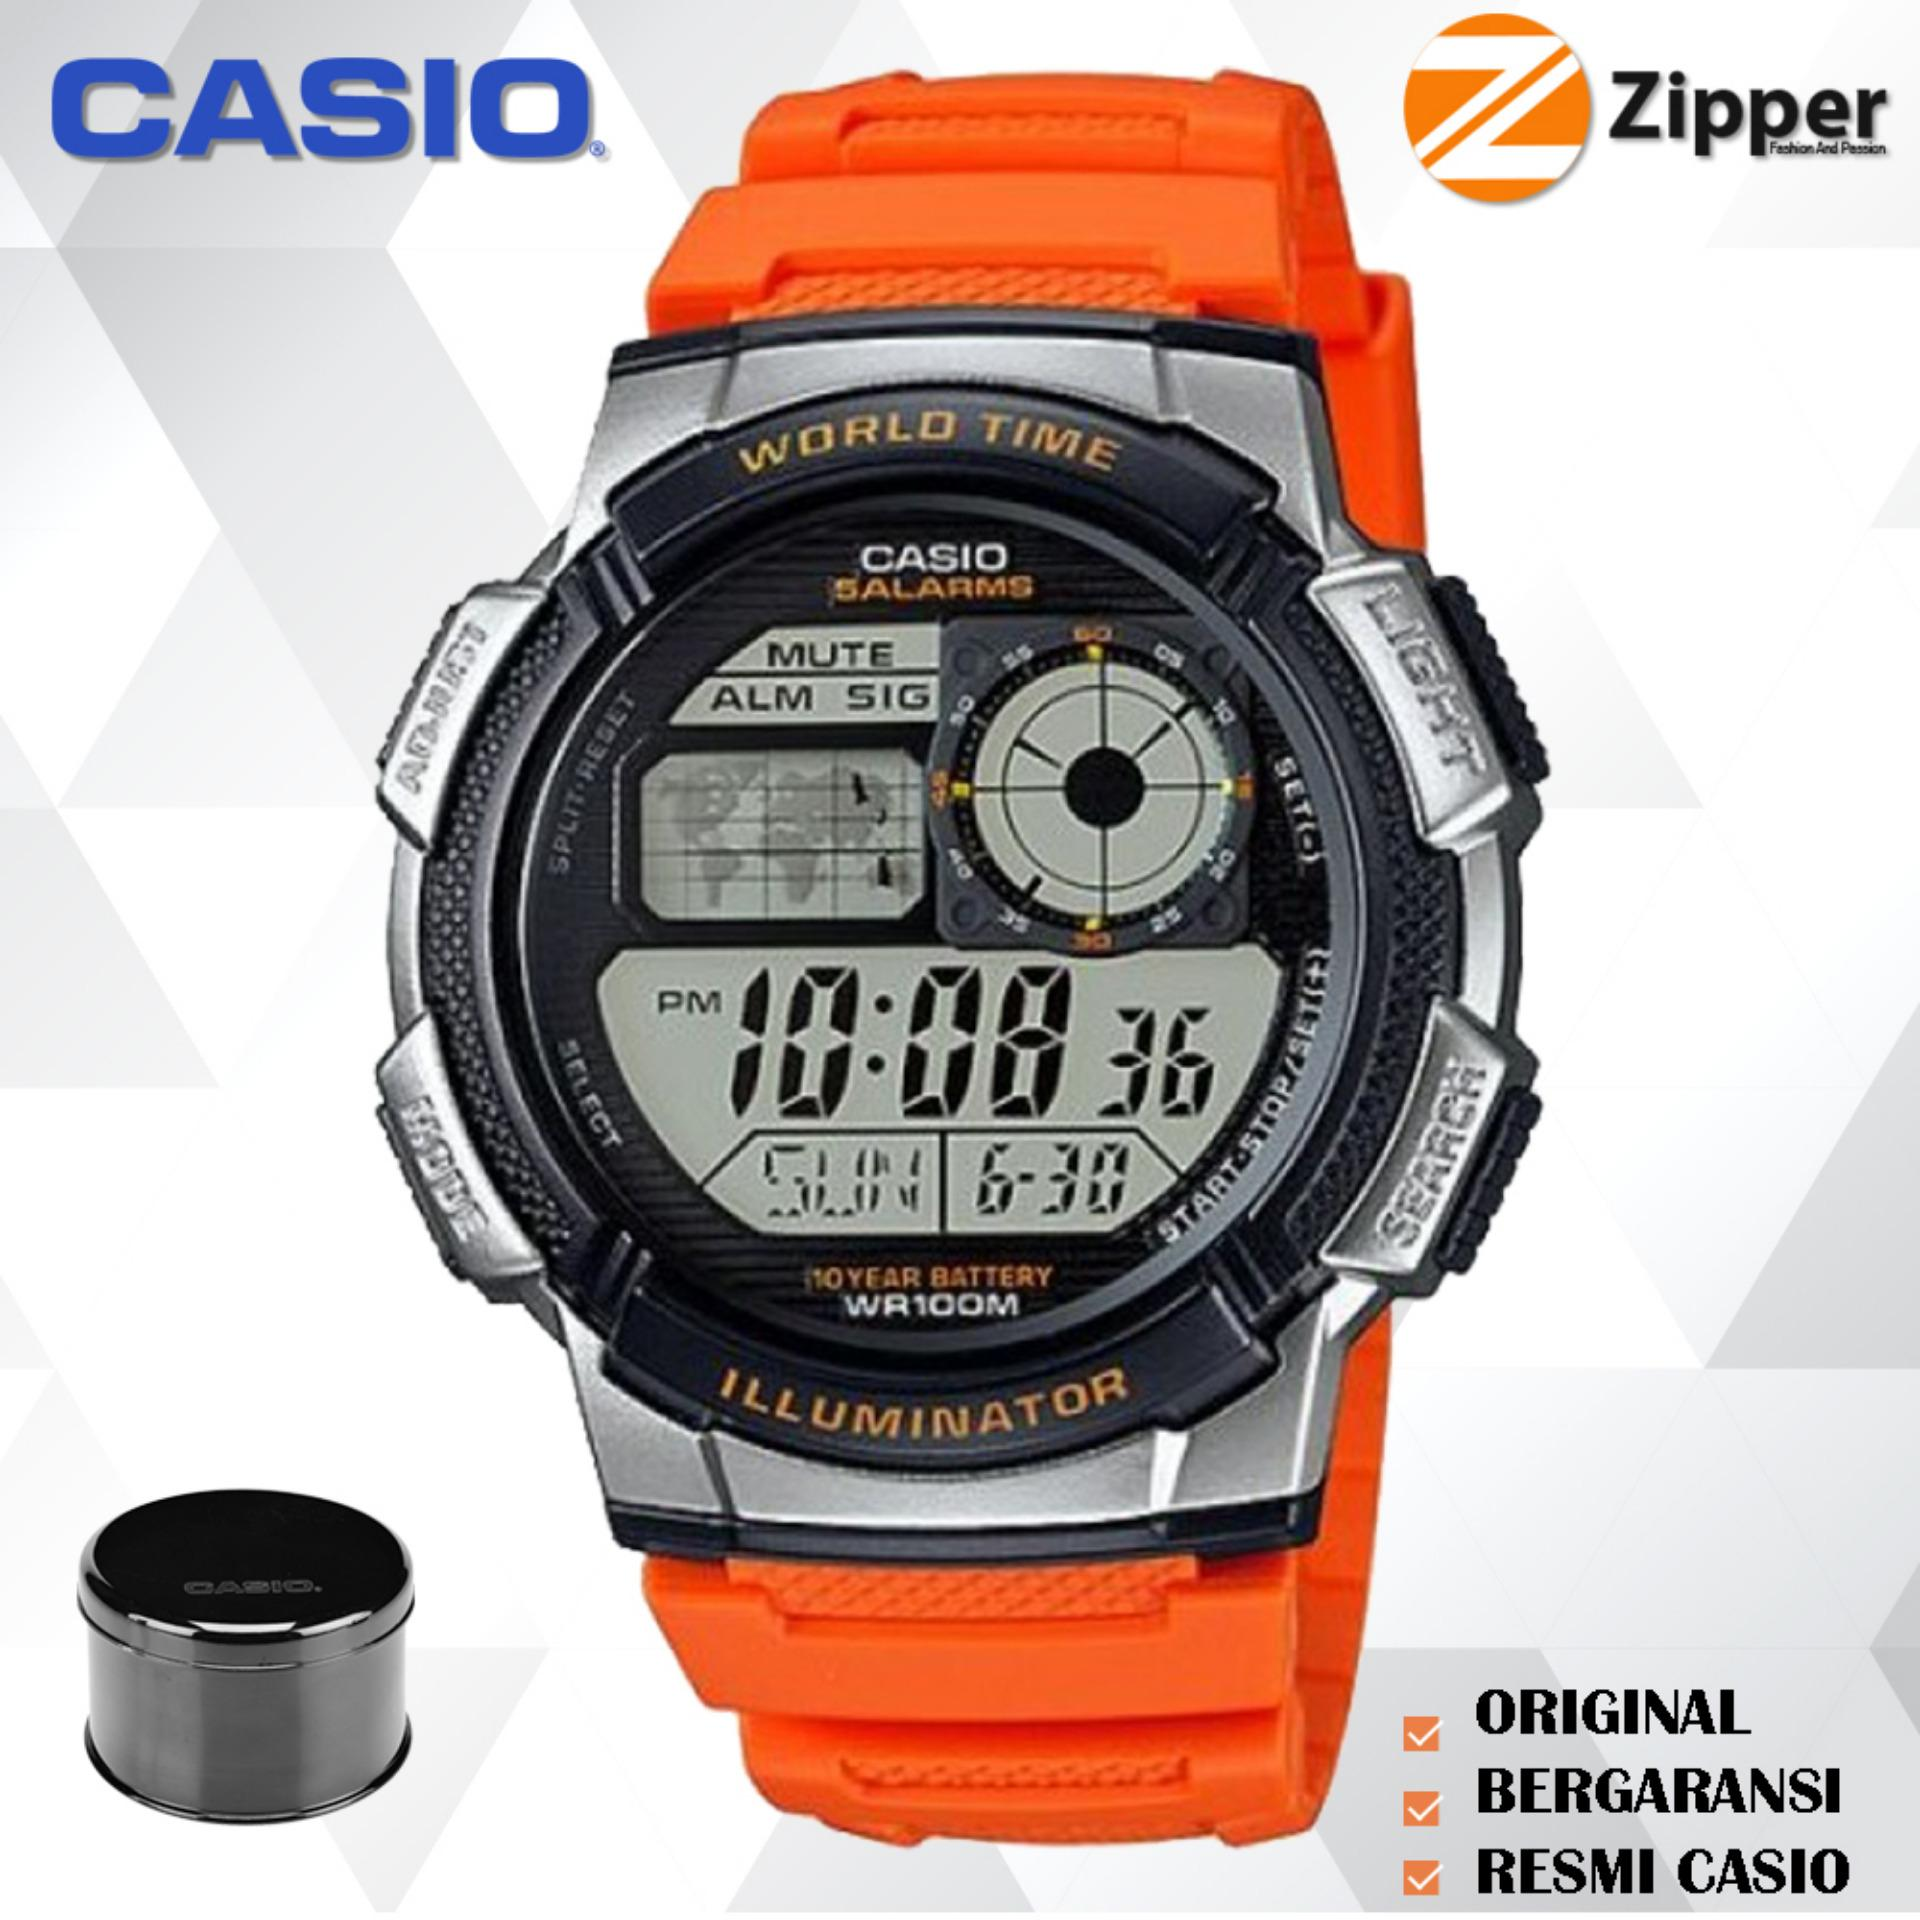 Casio Illuminator Jam Tangan Digital Men and Women AE-1000W Youth Series - Tali Karet